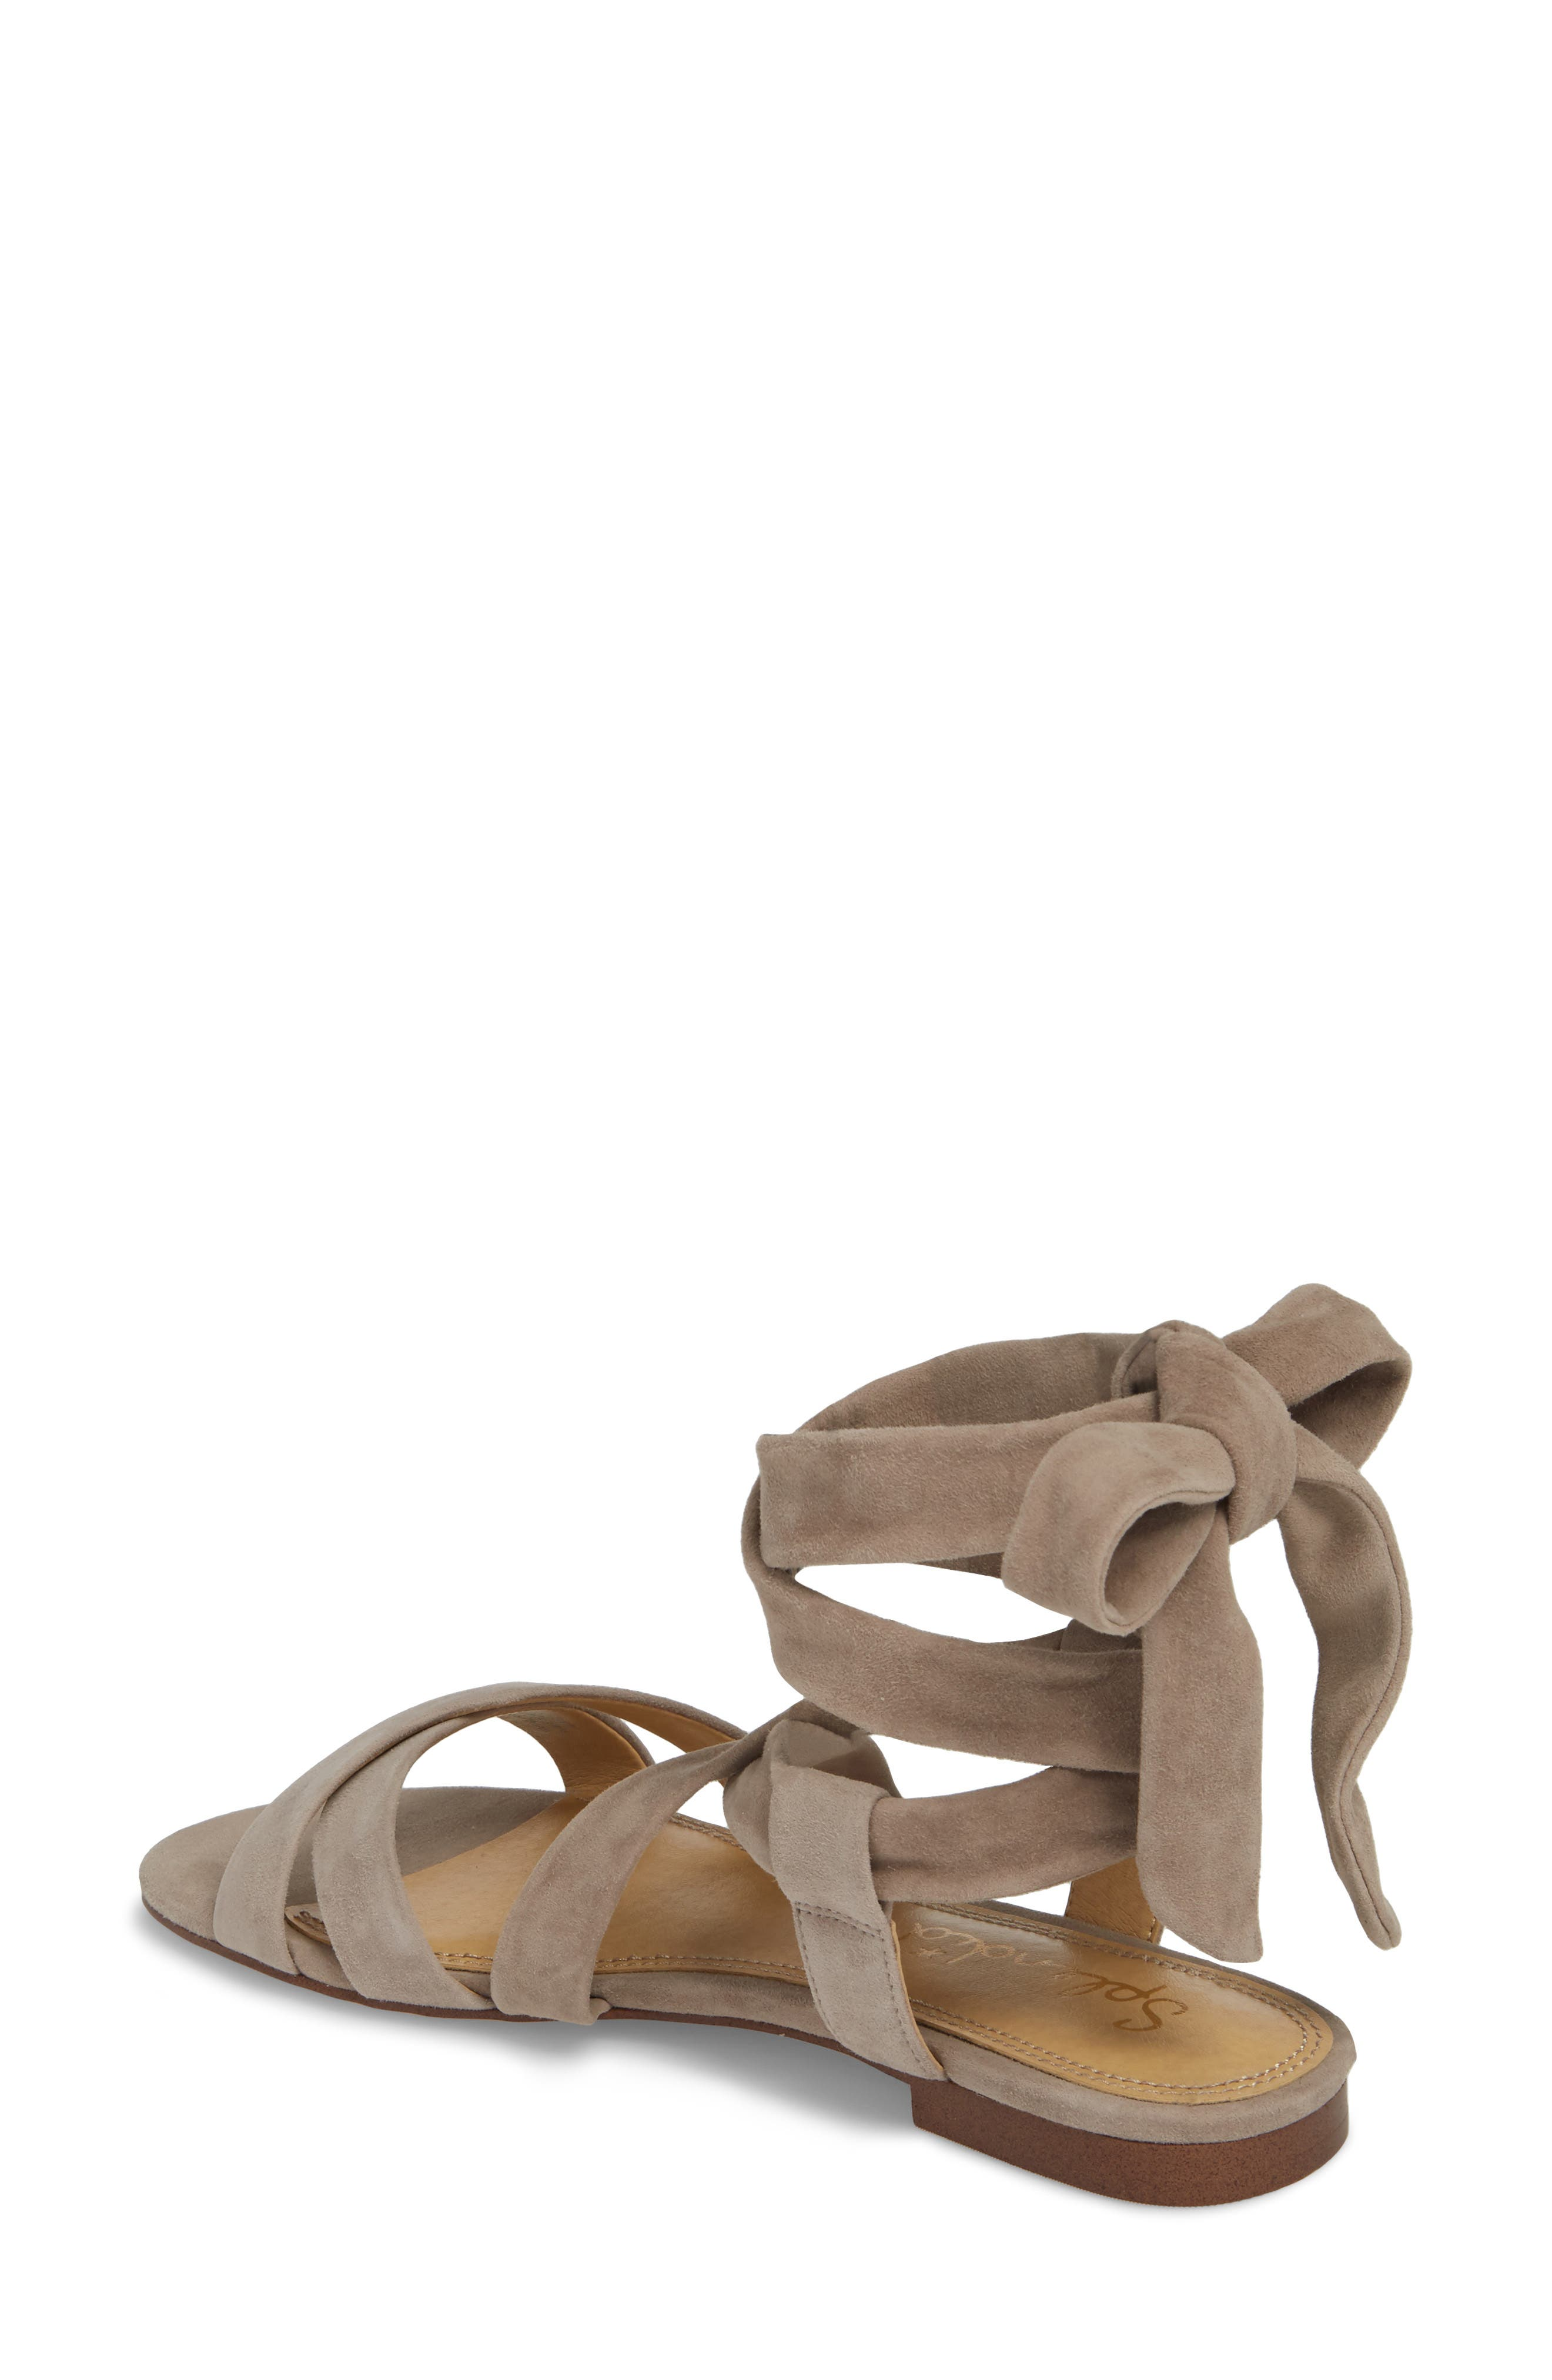 Feodora Ankle Wrap Sandal,                             Alternate thumbnail 2, color,                             TAUPE SUEDE